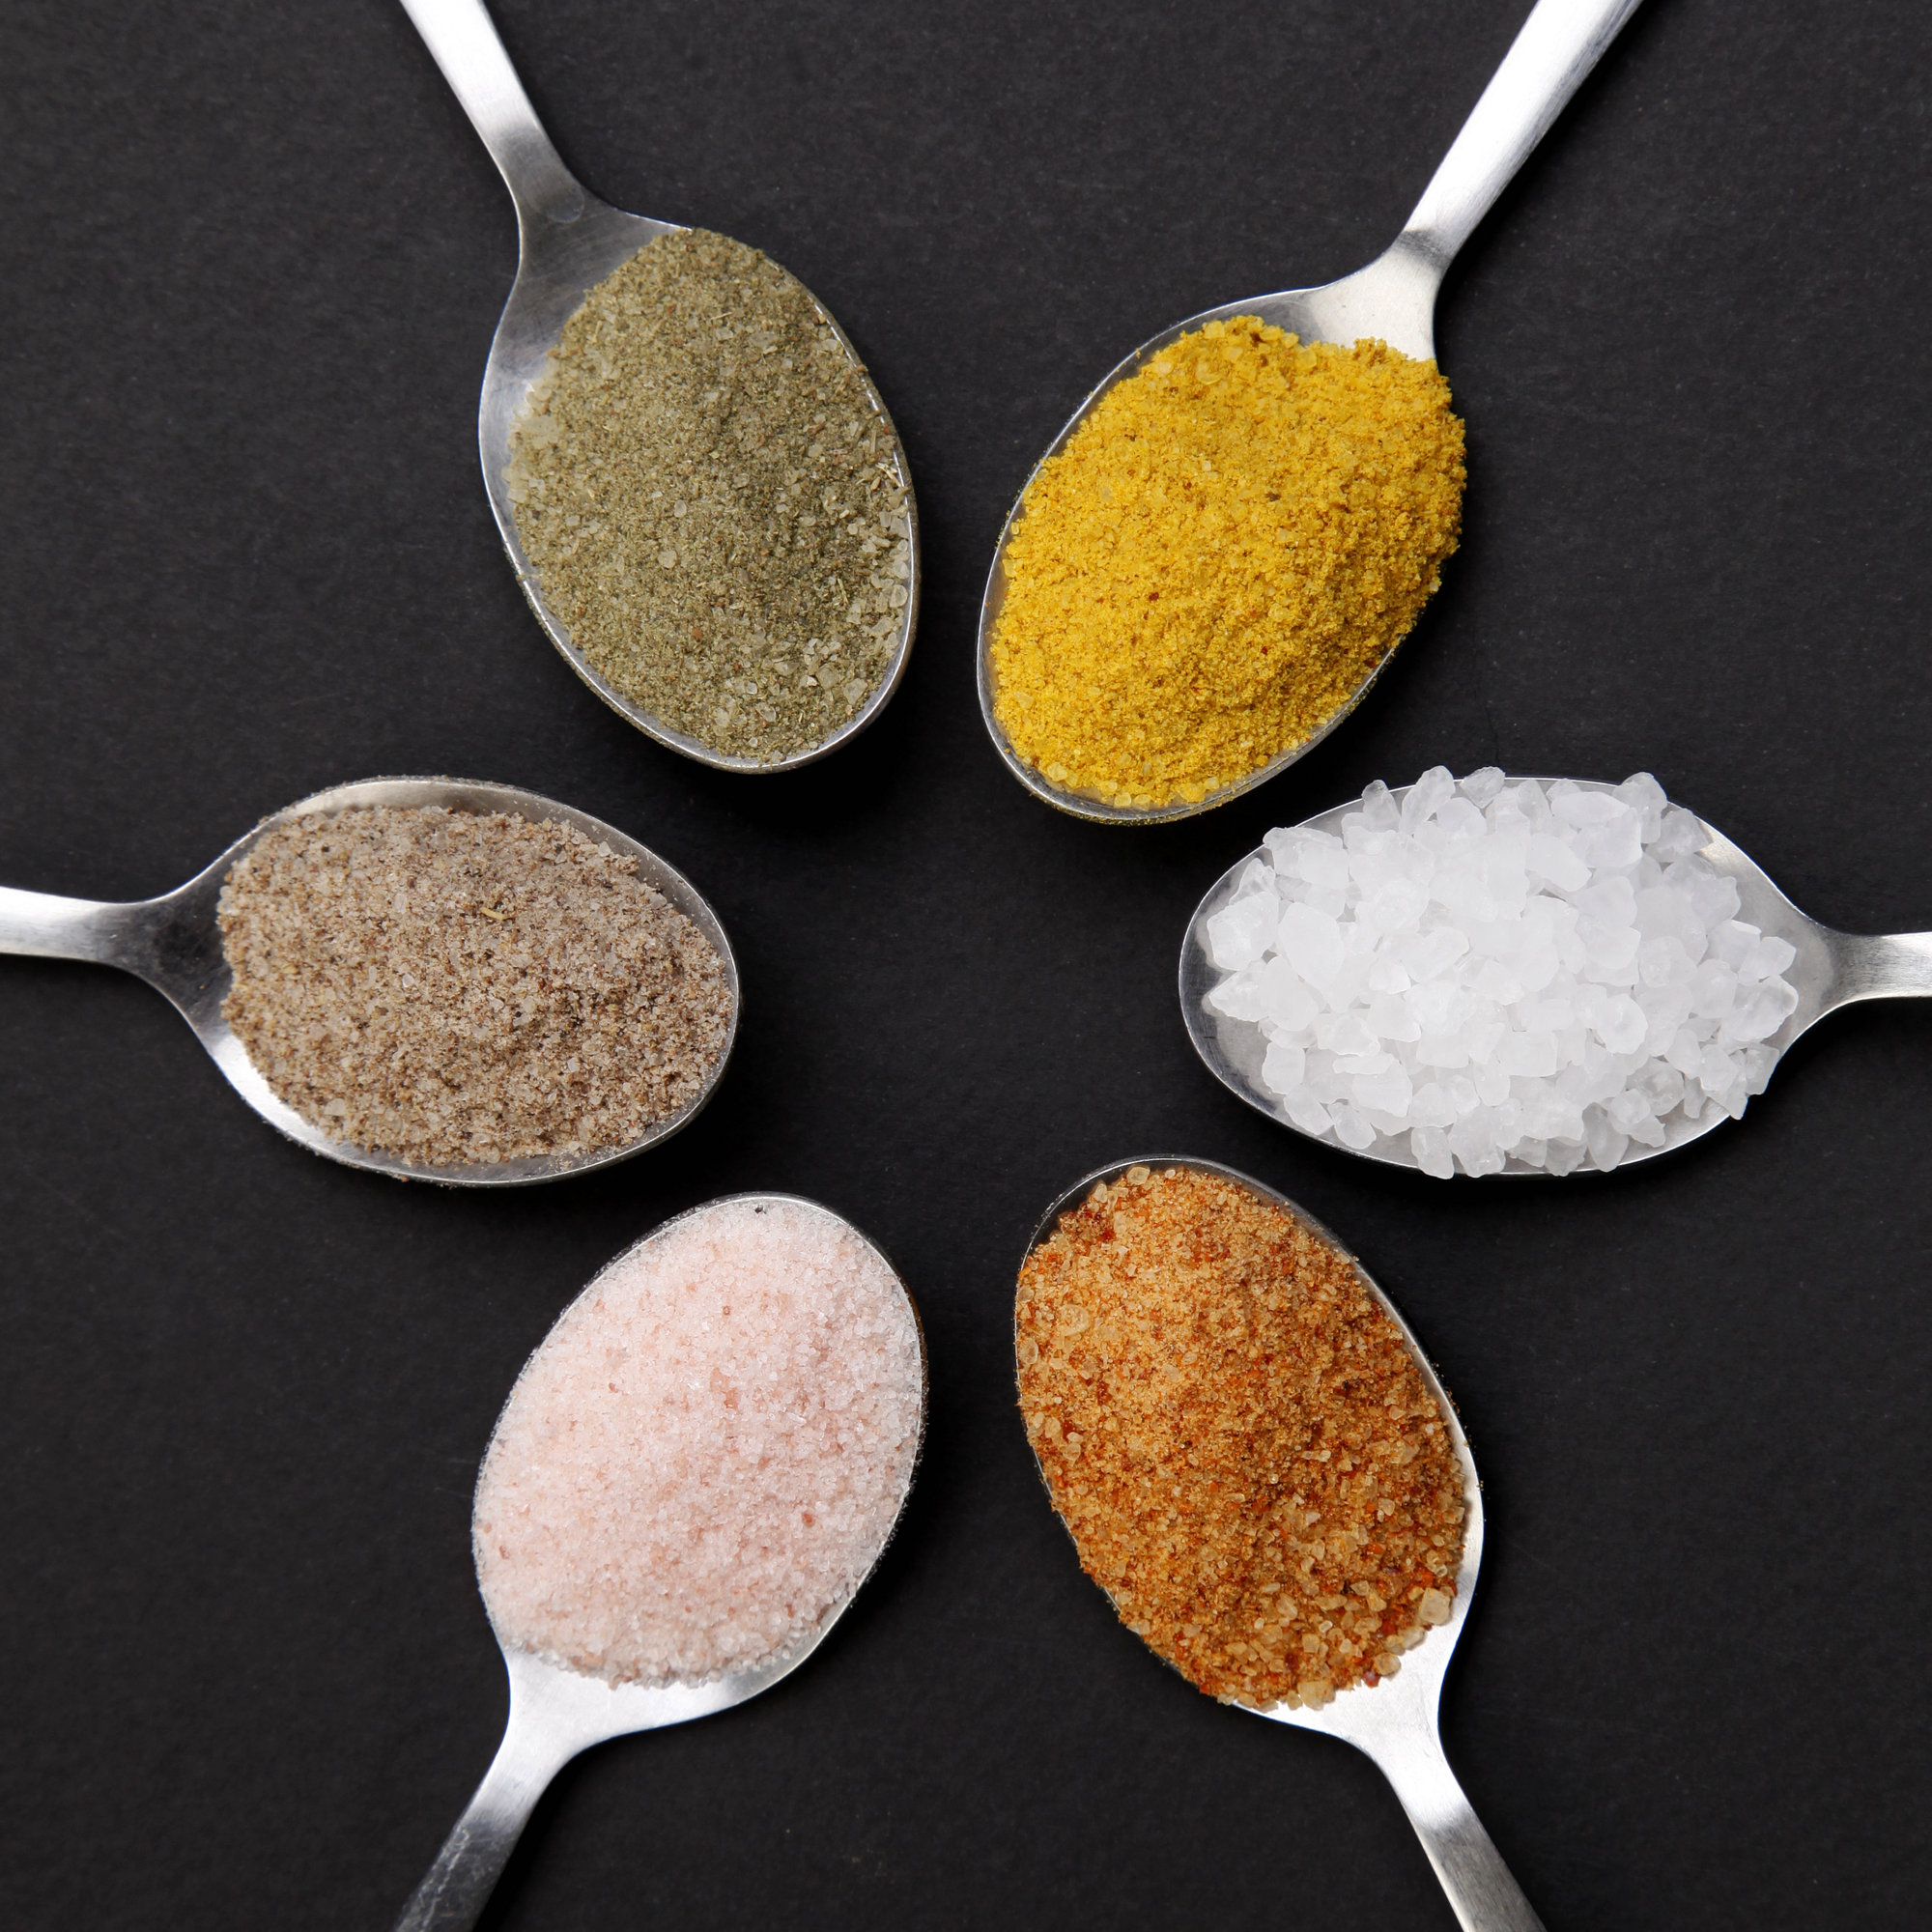 Salts and salt substitutes